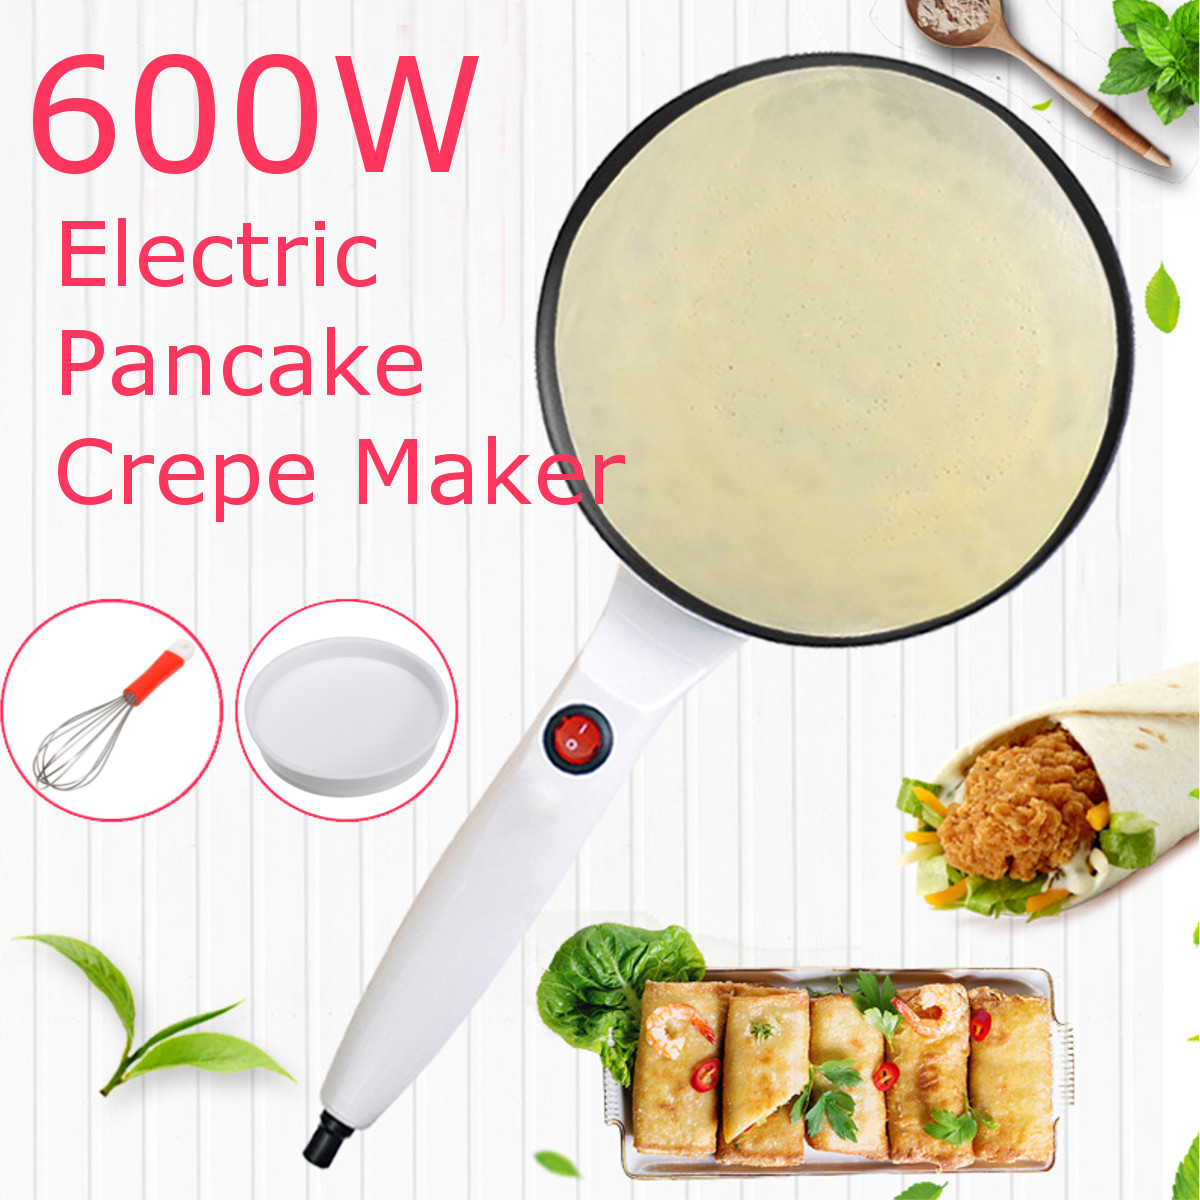 220V Non-stick Electric Crepe Pizza Maker Pancake Machine Non-stick Griddle Baking Pan Cake Machine Kitchen Cooking Tools Crepe